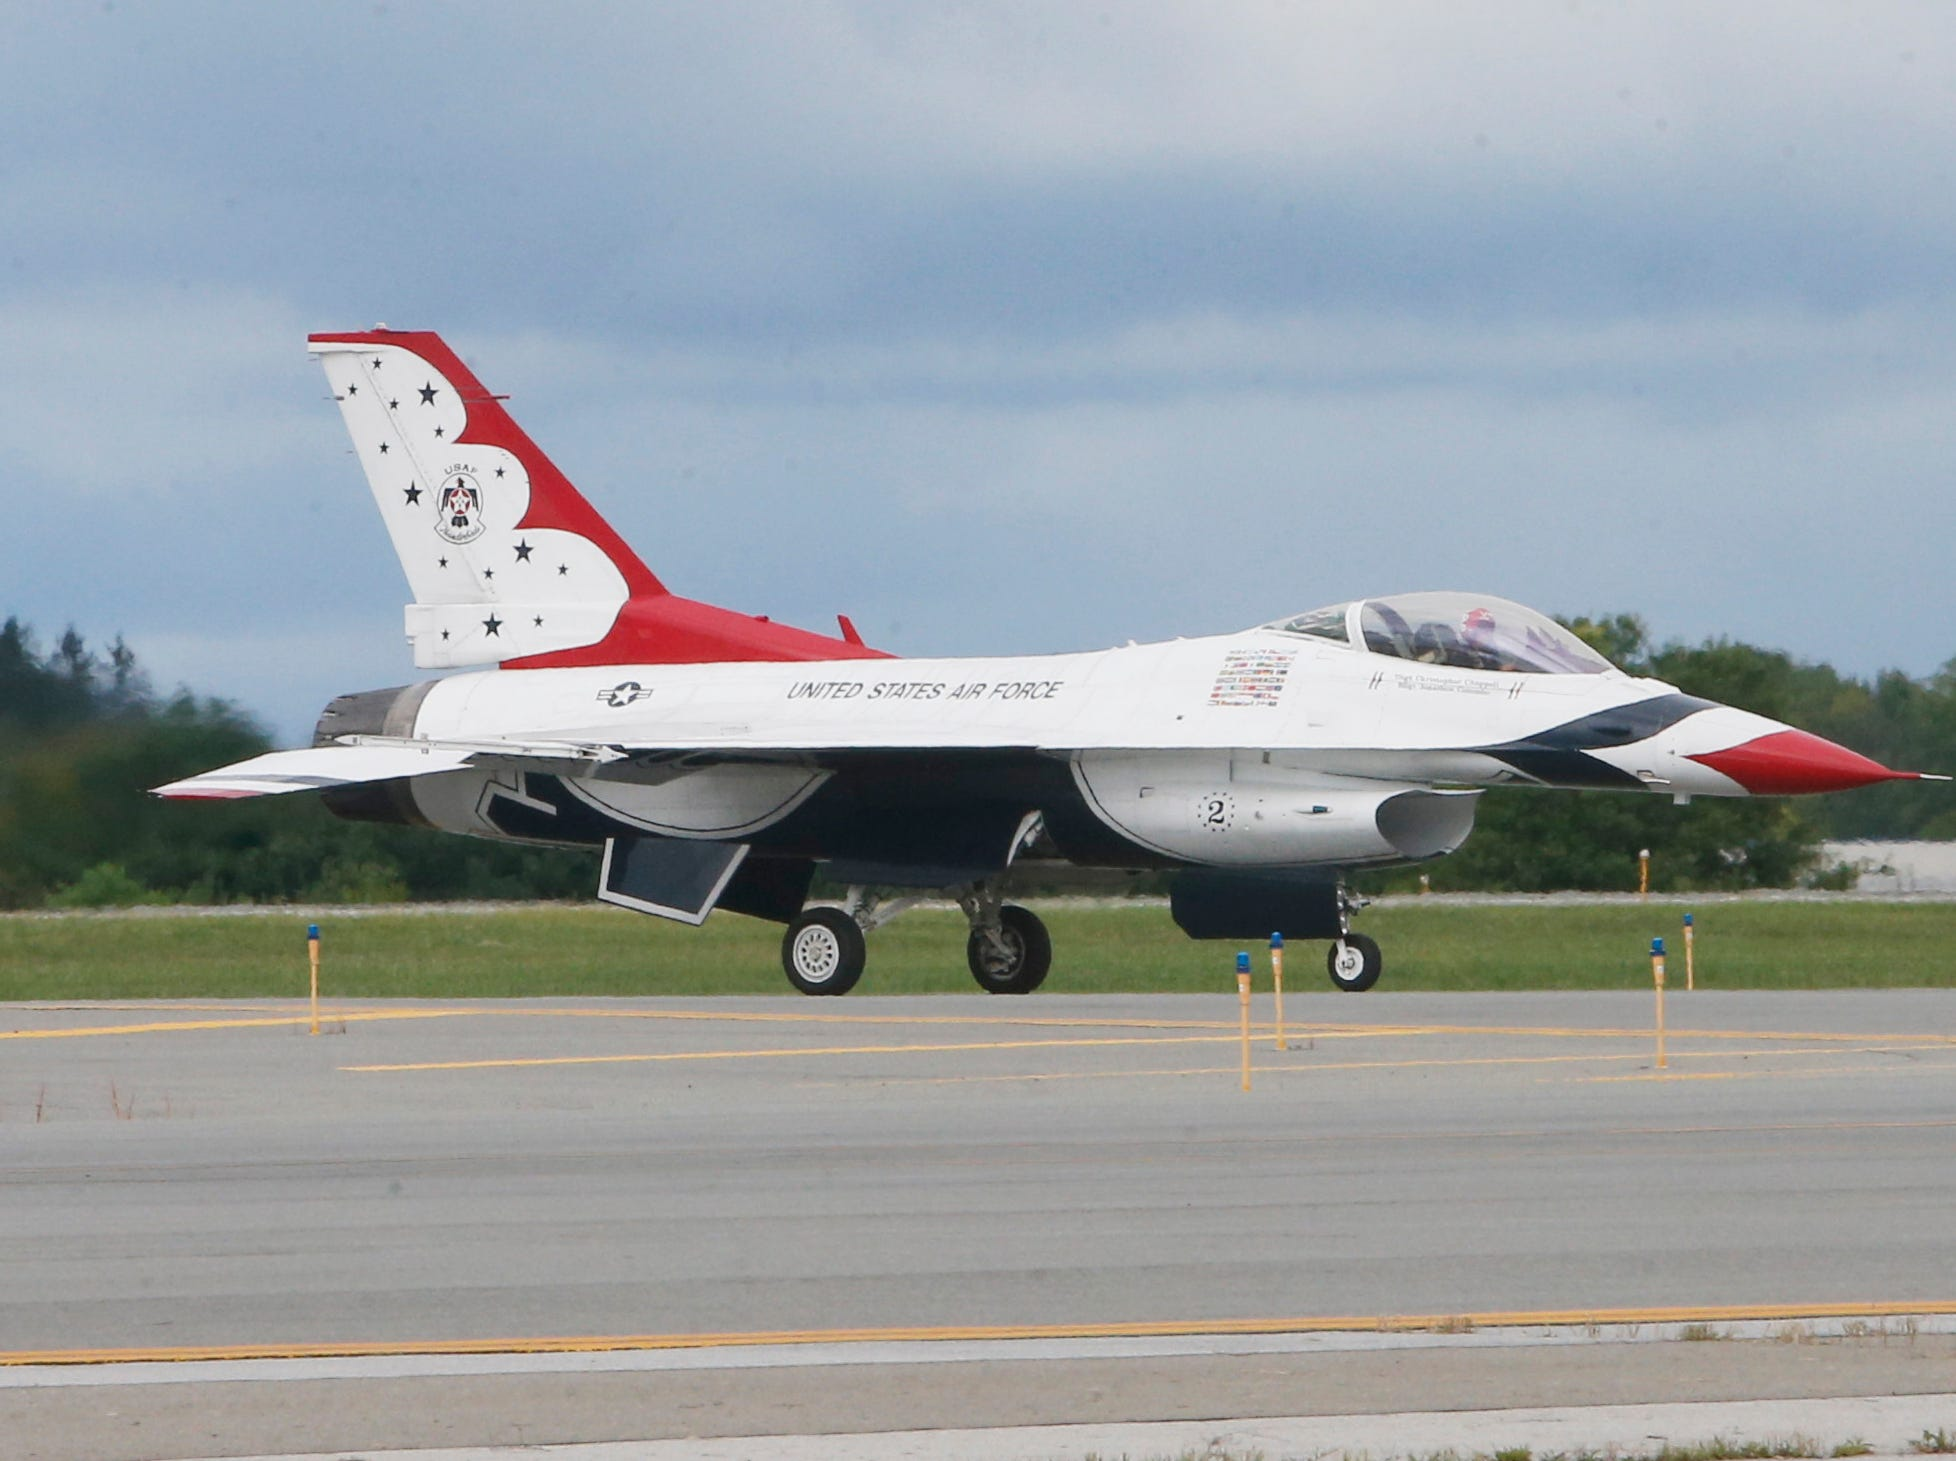 A F16 fighting falcon of the USAF Thunderbirds taxis on a runway at Stewart Air Force Base in Newburgh on Sept 13, 2018.